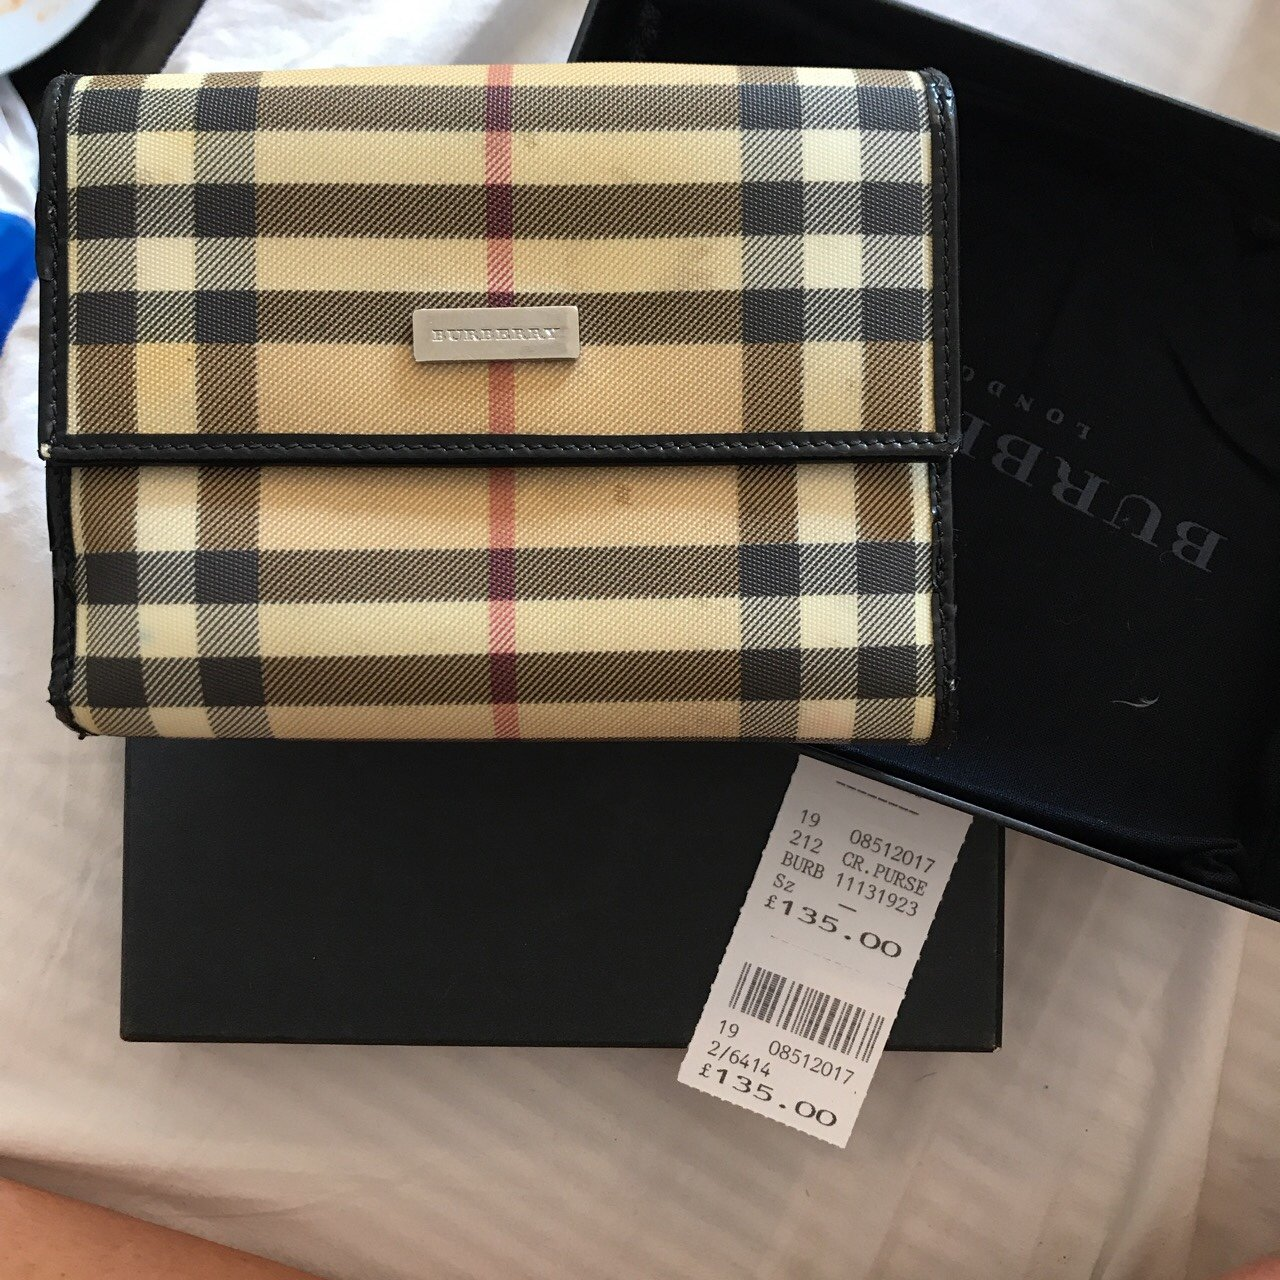 1898568c321e FINAL REDUCTION authentic burberry purse with receipts. on a - Depop